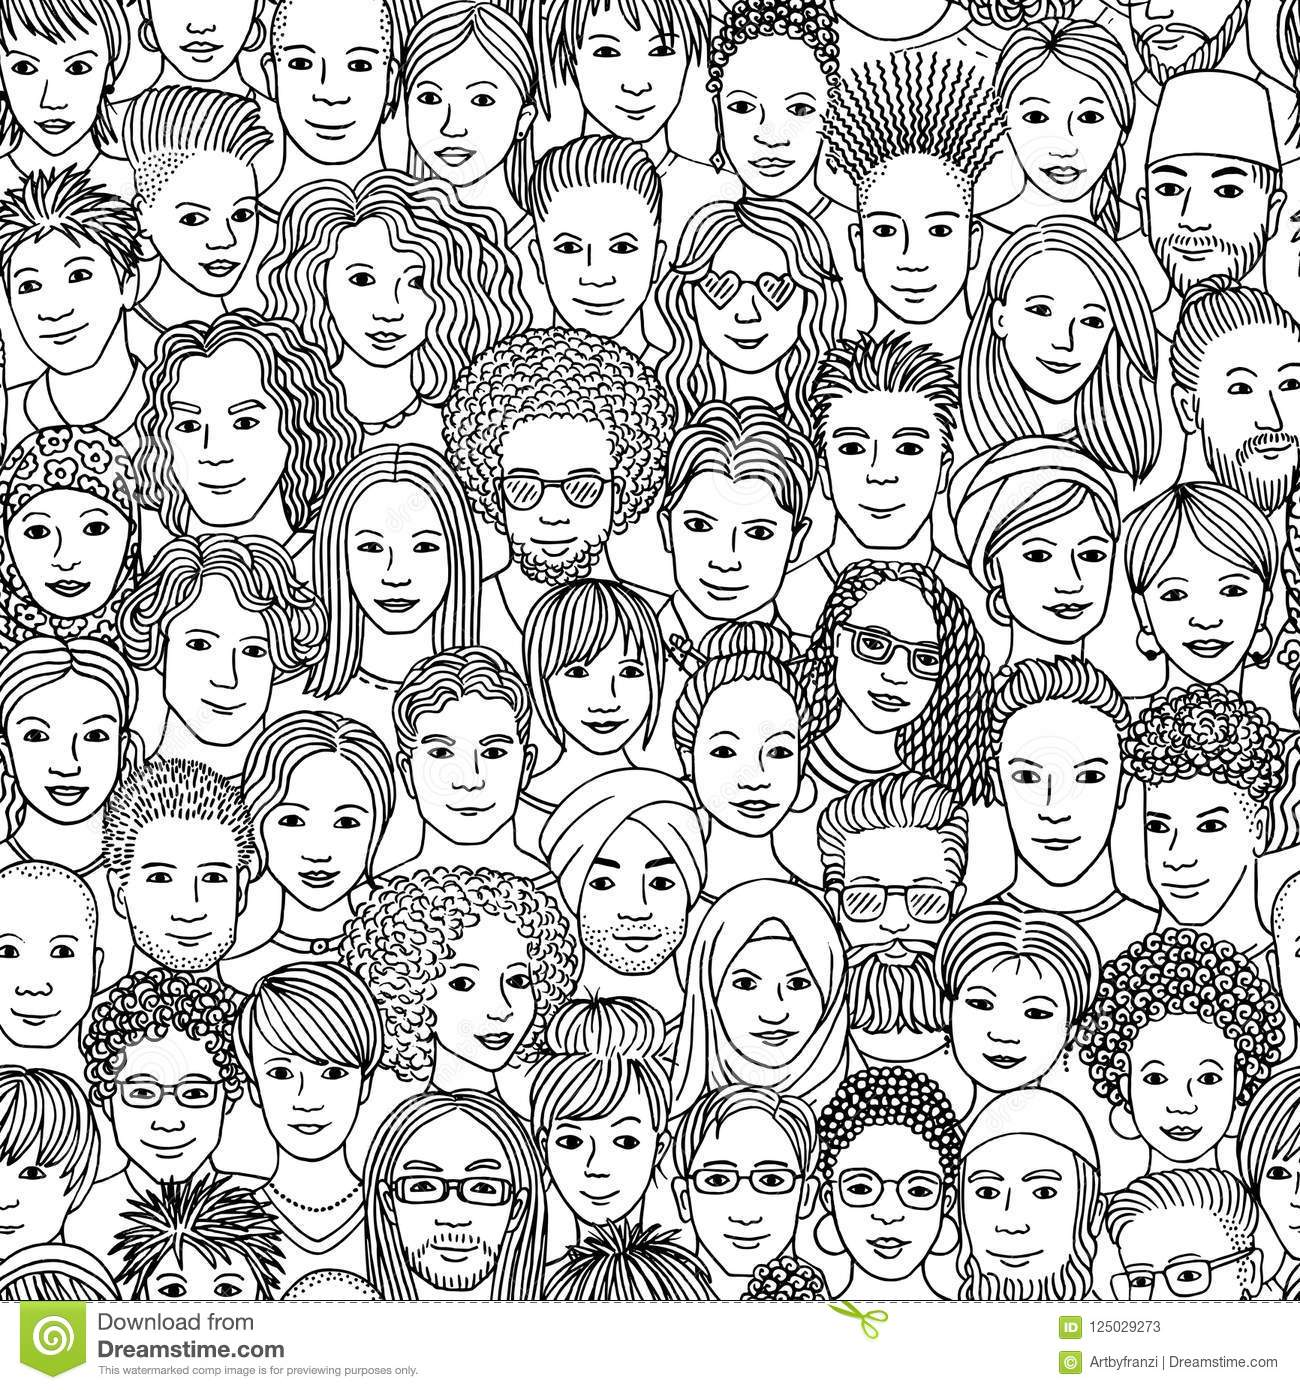 Diverse crowd of people seamless pattern of hand drawn faces of various ethnicities